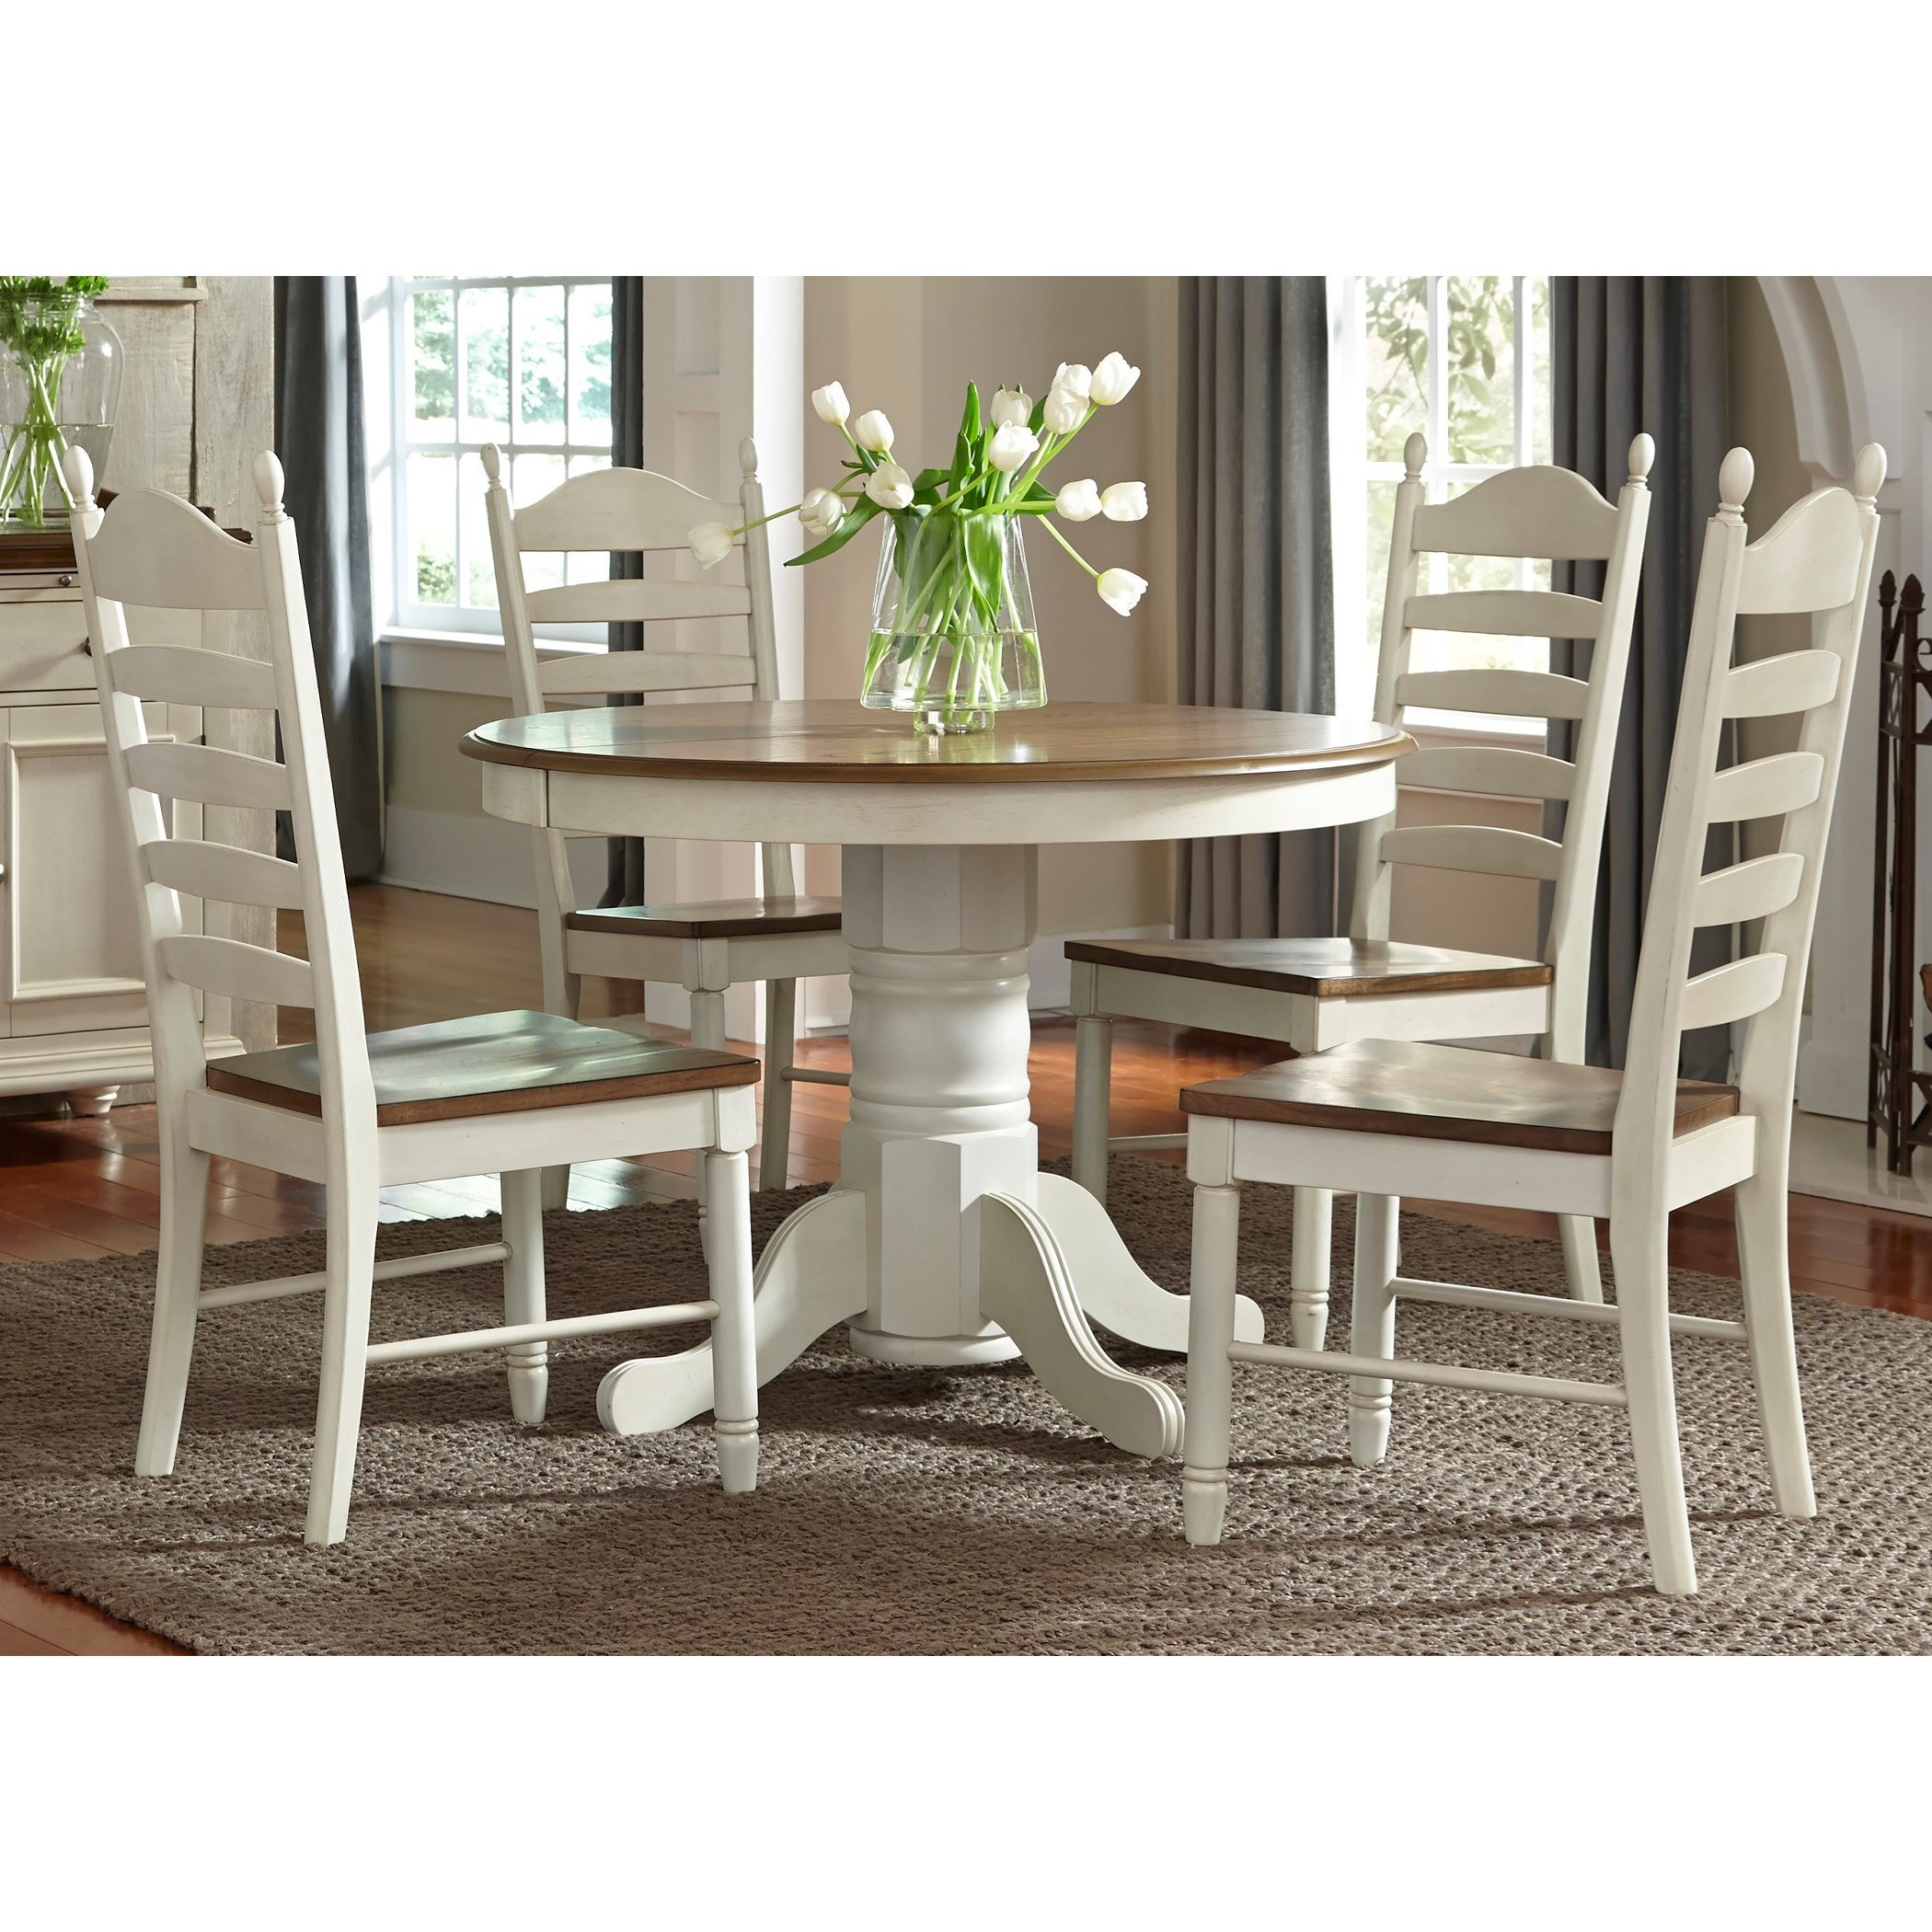 Springfield Dining Pedestal Table by Libby at Walker's Furniture